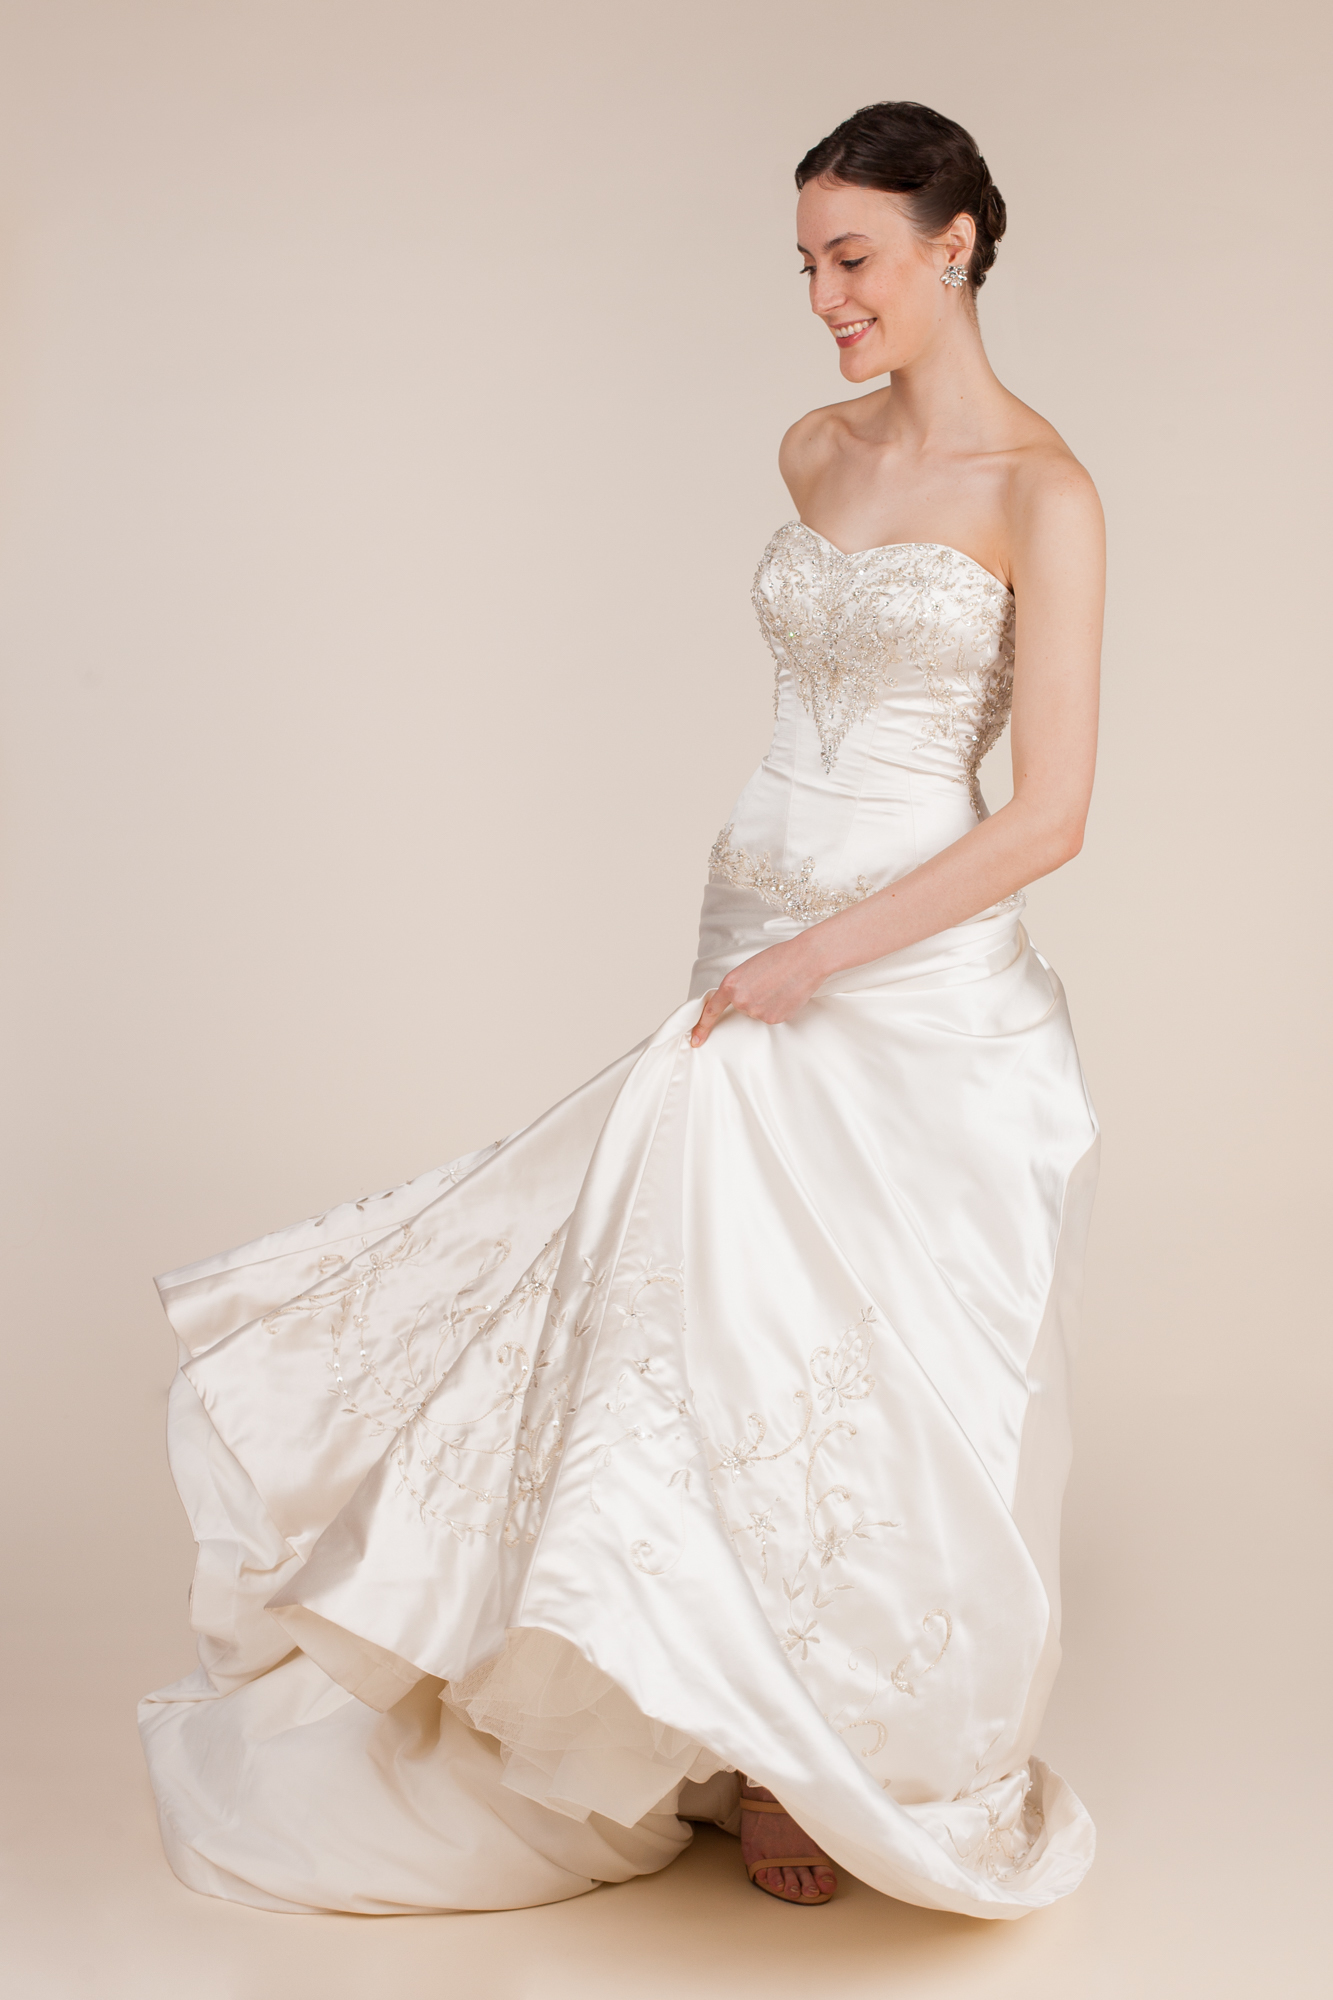 Allure bridals size 0 - $600 - (50% OFF)